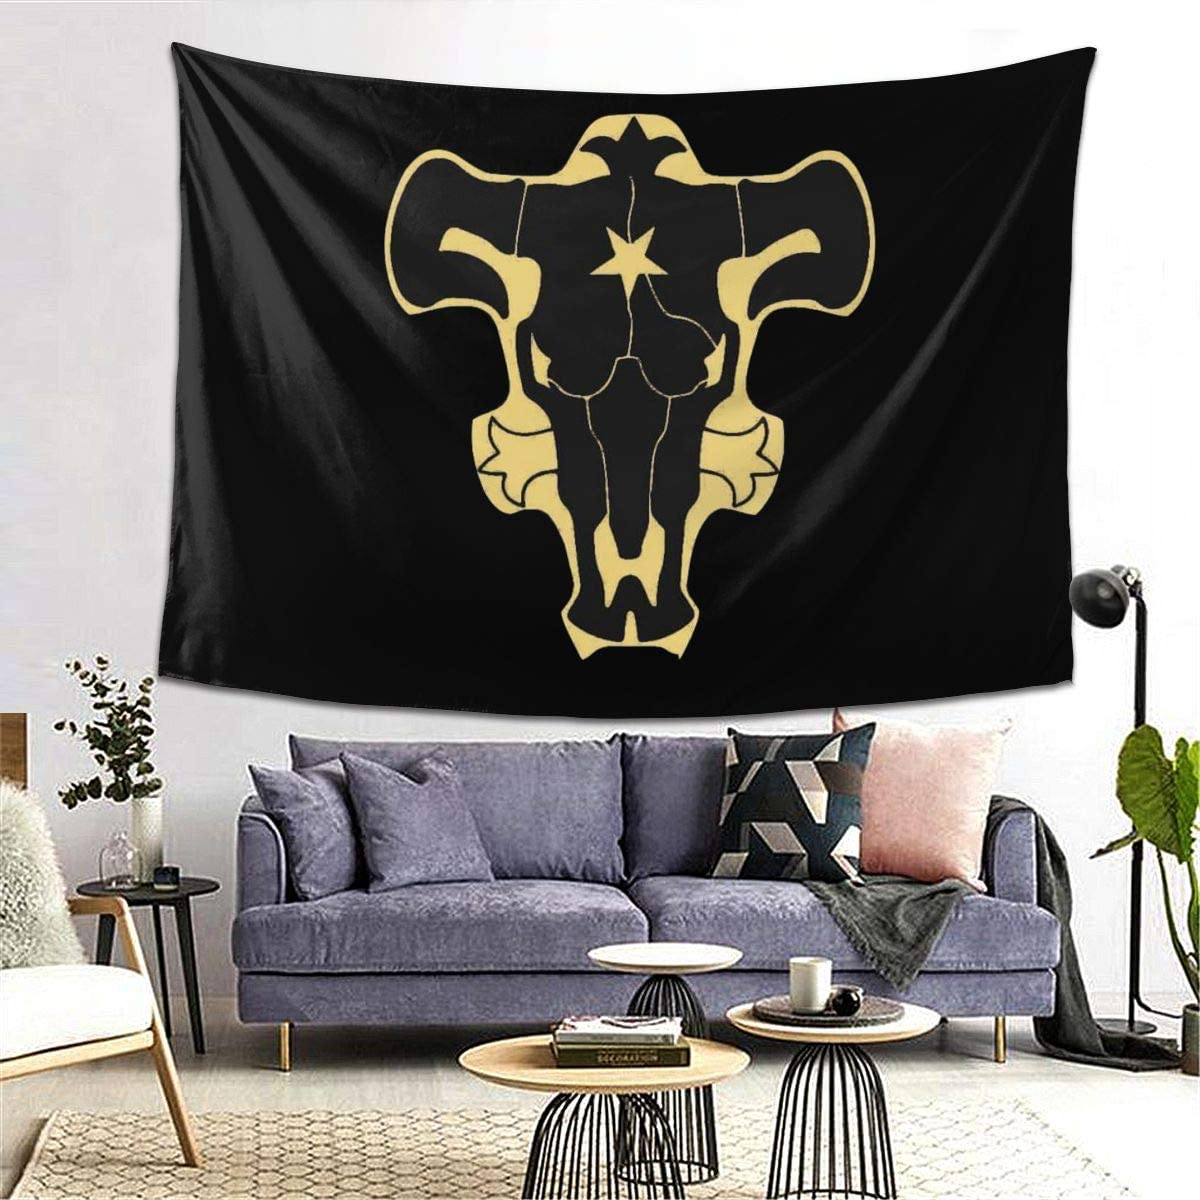 Black Clover Tapestry Black Bull Novelty 60×80 Wall Hanging Home Decor Tablecloth Blanket Picnic Beach Mat Carpet Sofa Cover Poster